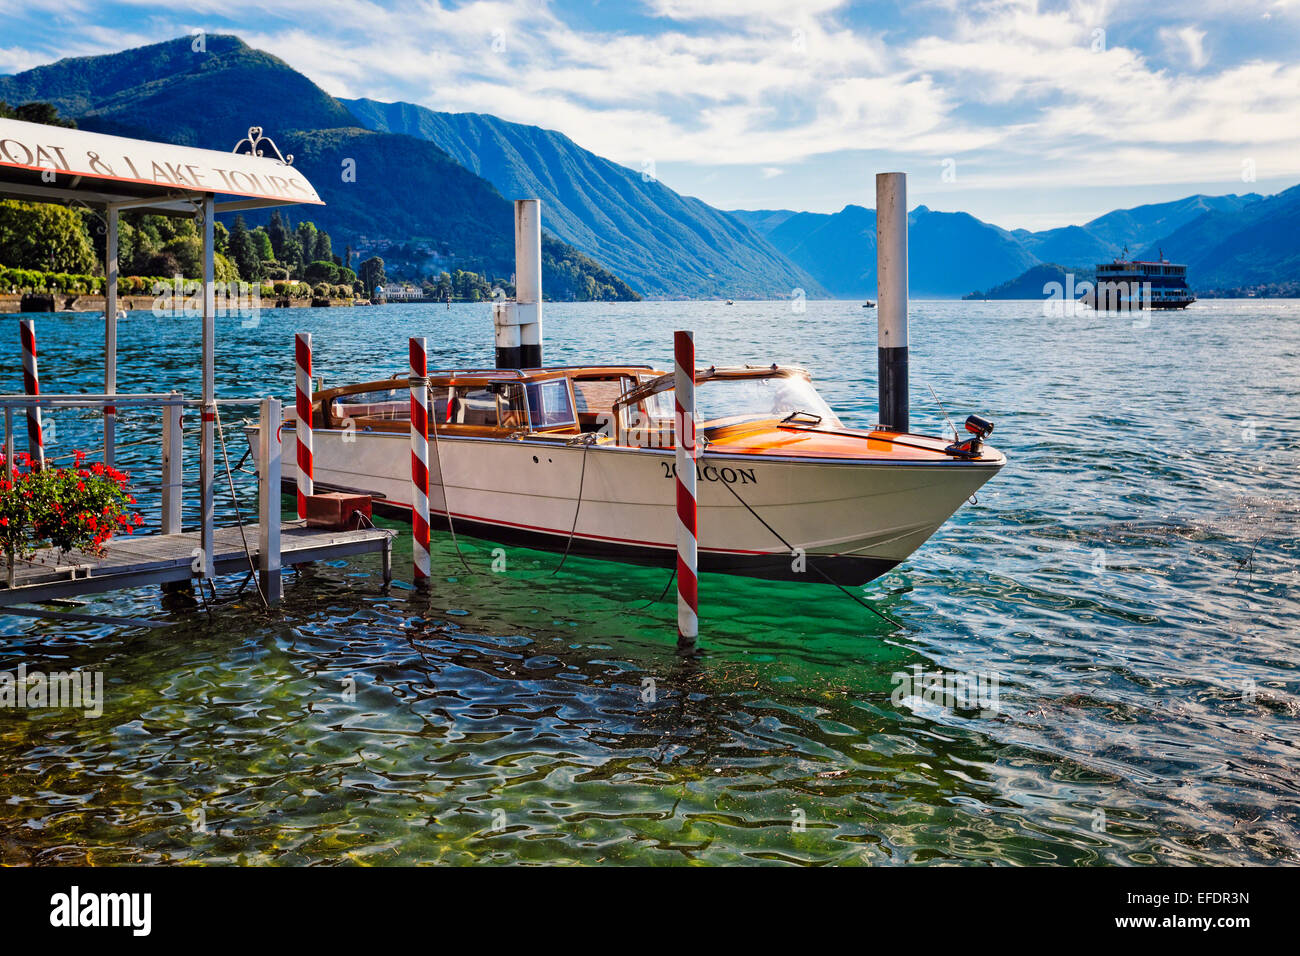 Small Tourboat Docked at a Pier, Bellagio, Lake Como, Lombardy, Italy - Stock Image